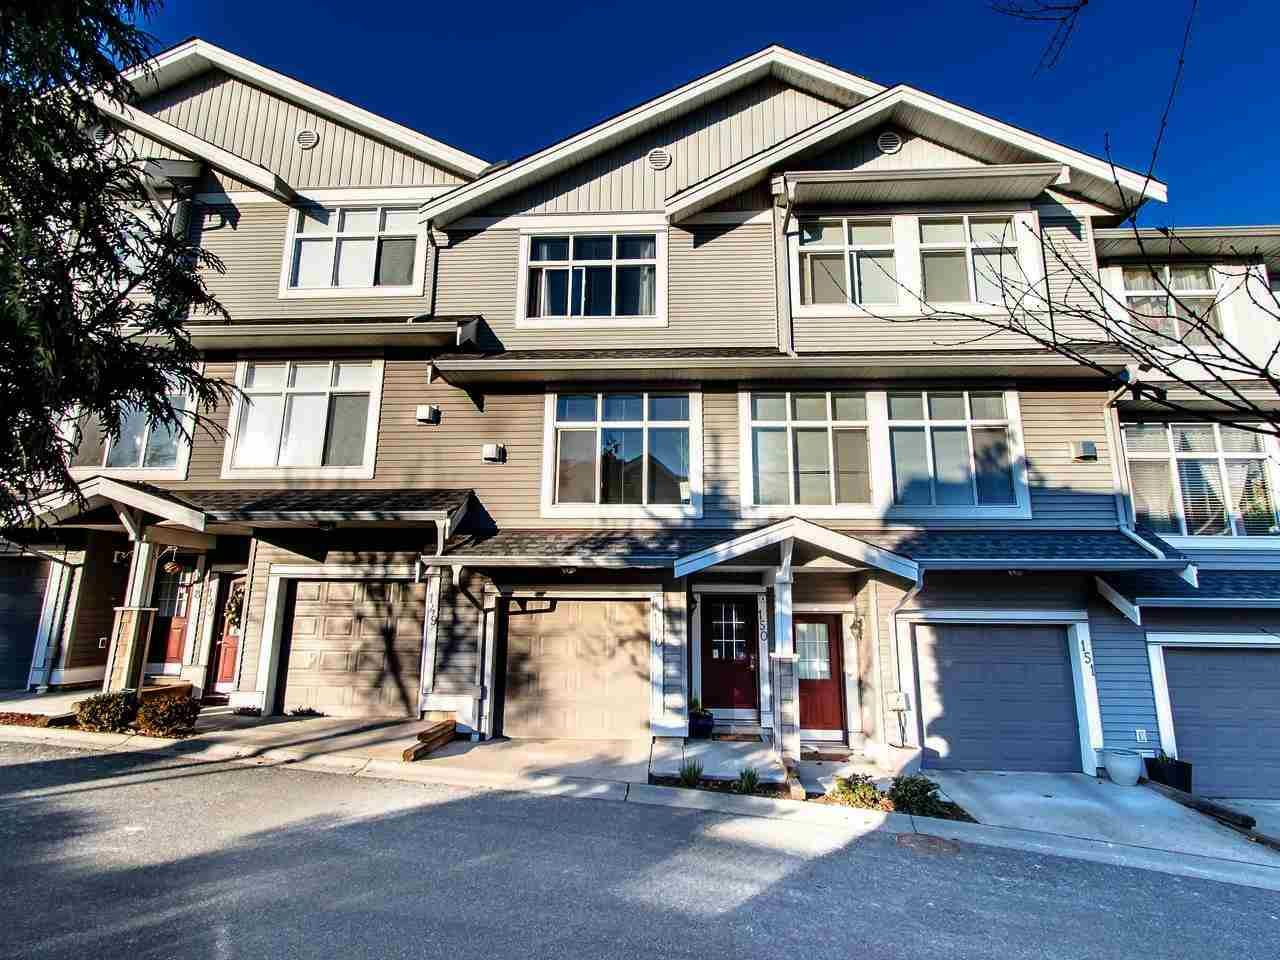 """Main Photo: 150 20449 66 Avenue in Langley: Willoughby Heights Townhouse for sale in """"NATURES LANDING"""" : MLS®# R2422981"""